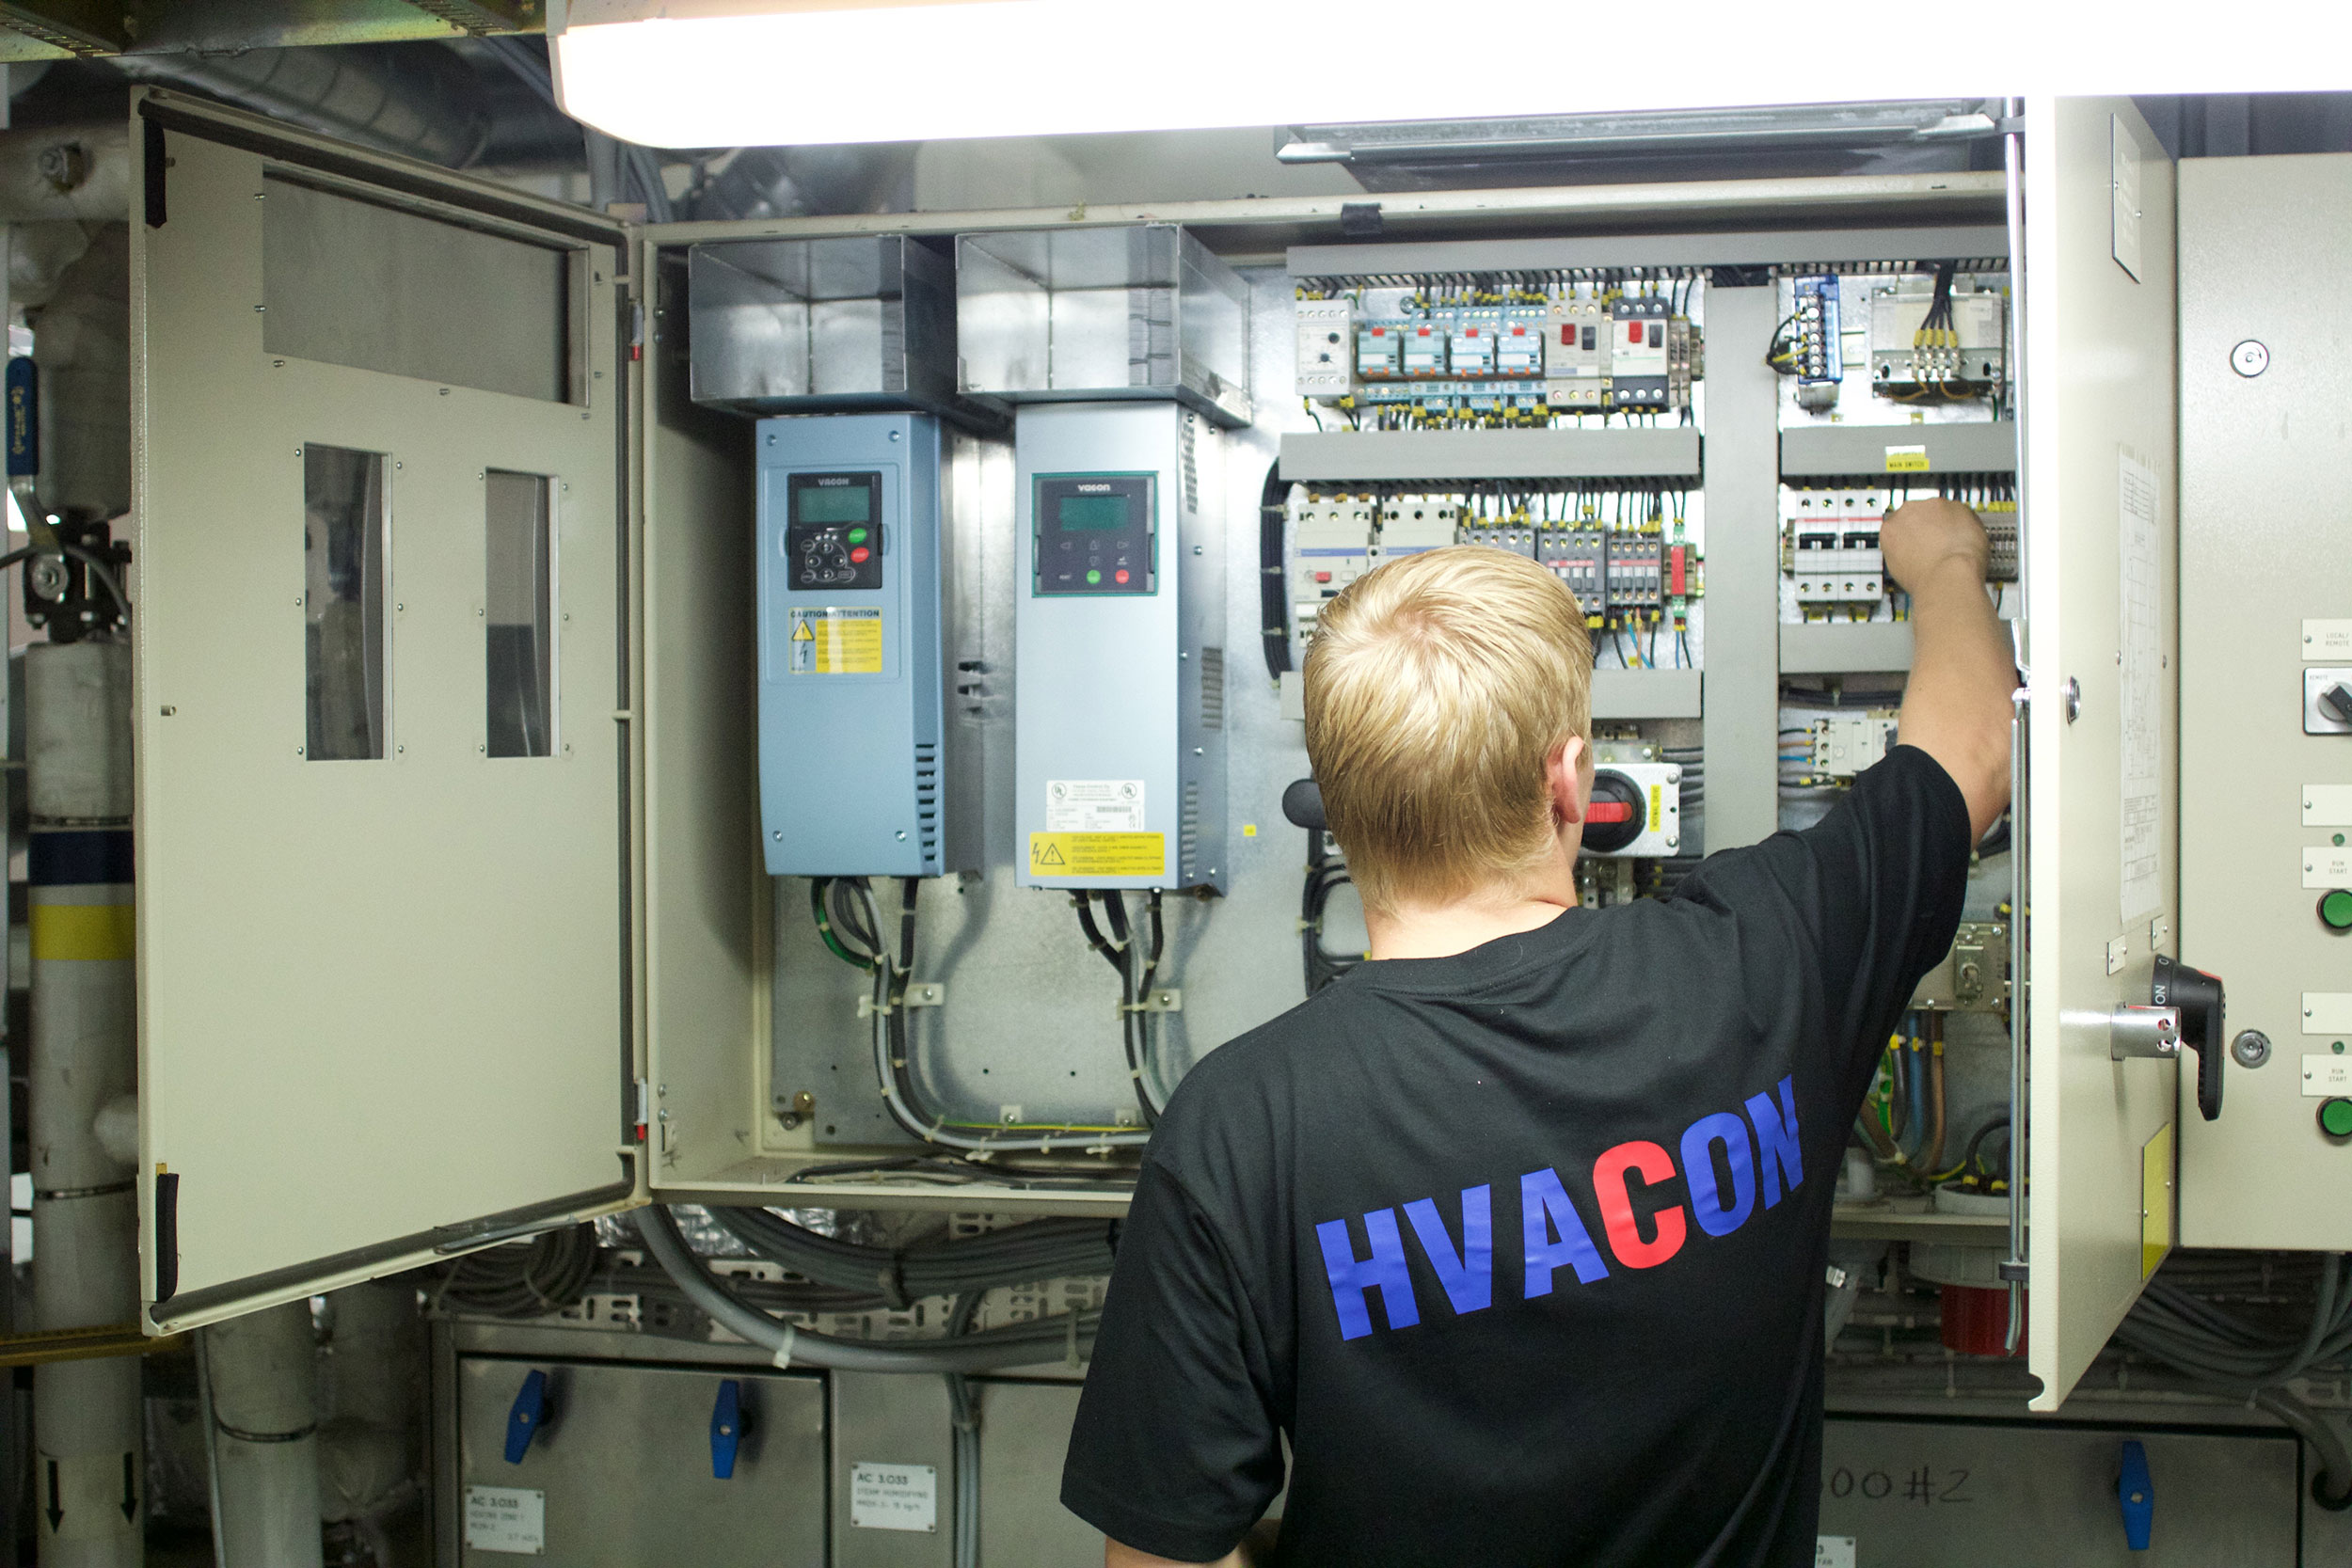 Hvac Control Energy Optimization And Management Electrical Design Wiring Automation